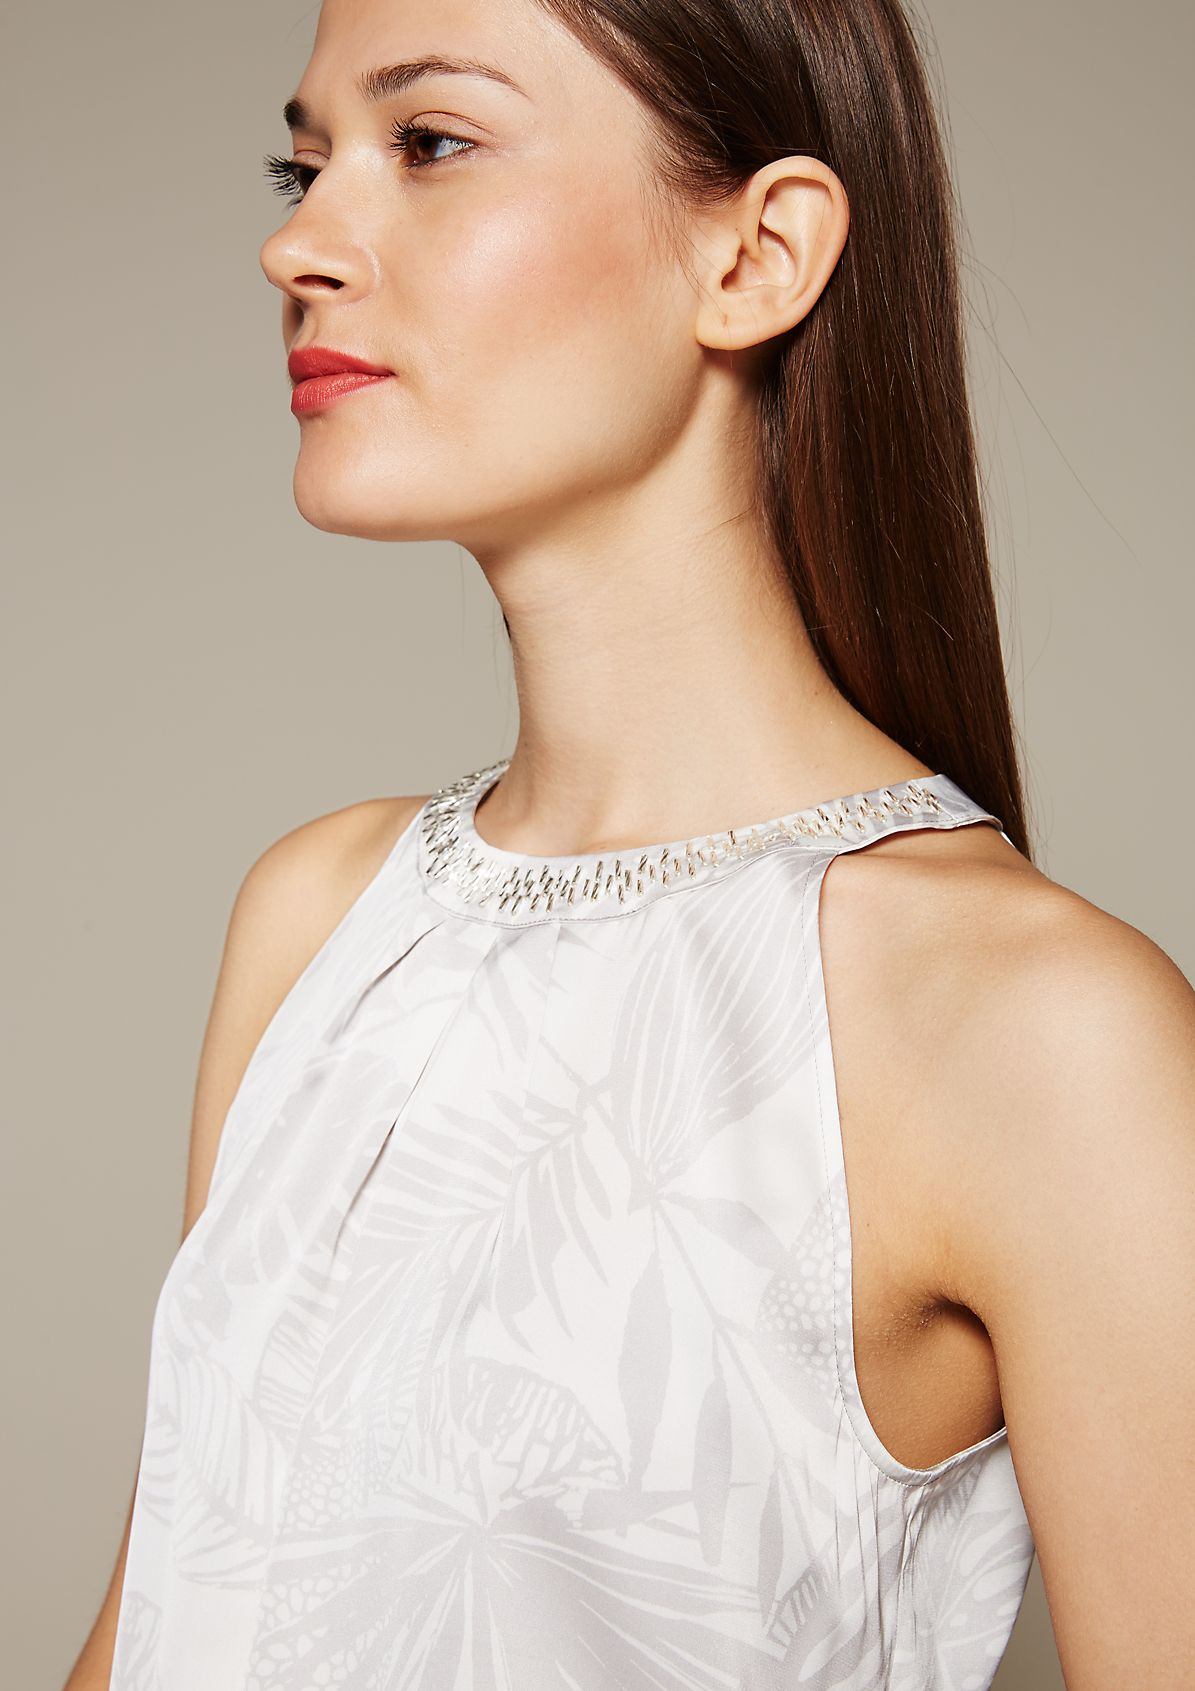 Extravagant satin top with a sophisticated all-over print from s.Oliver